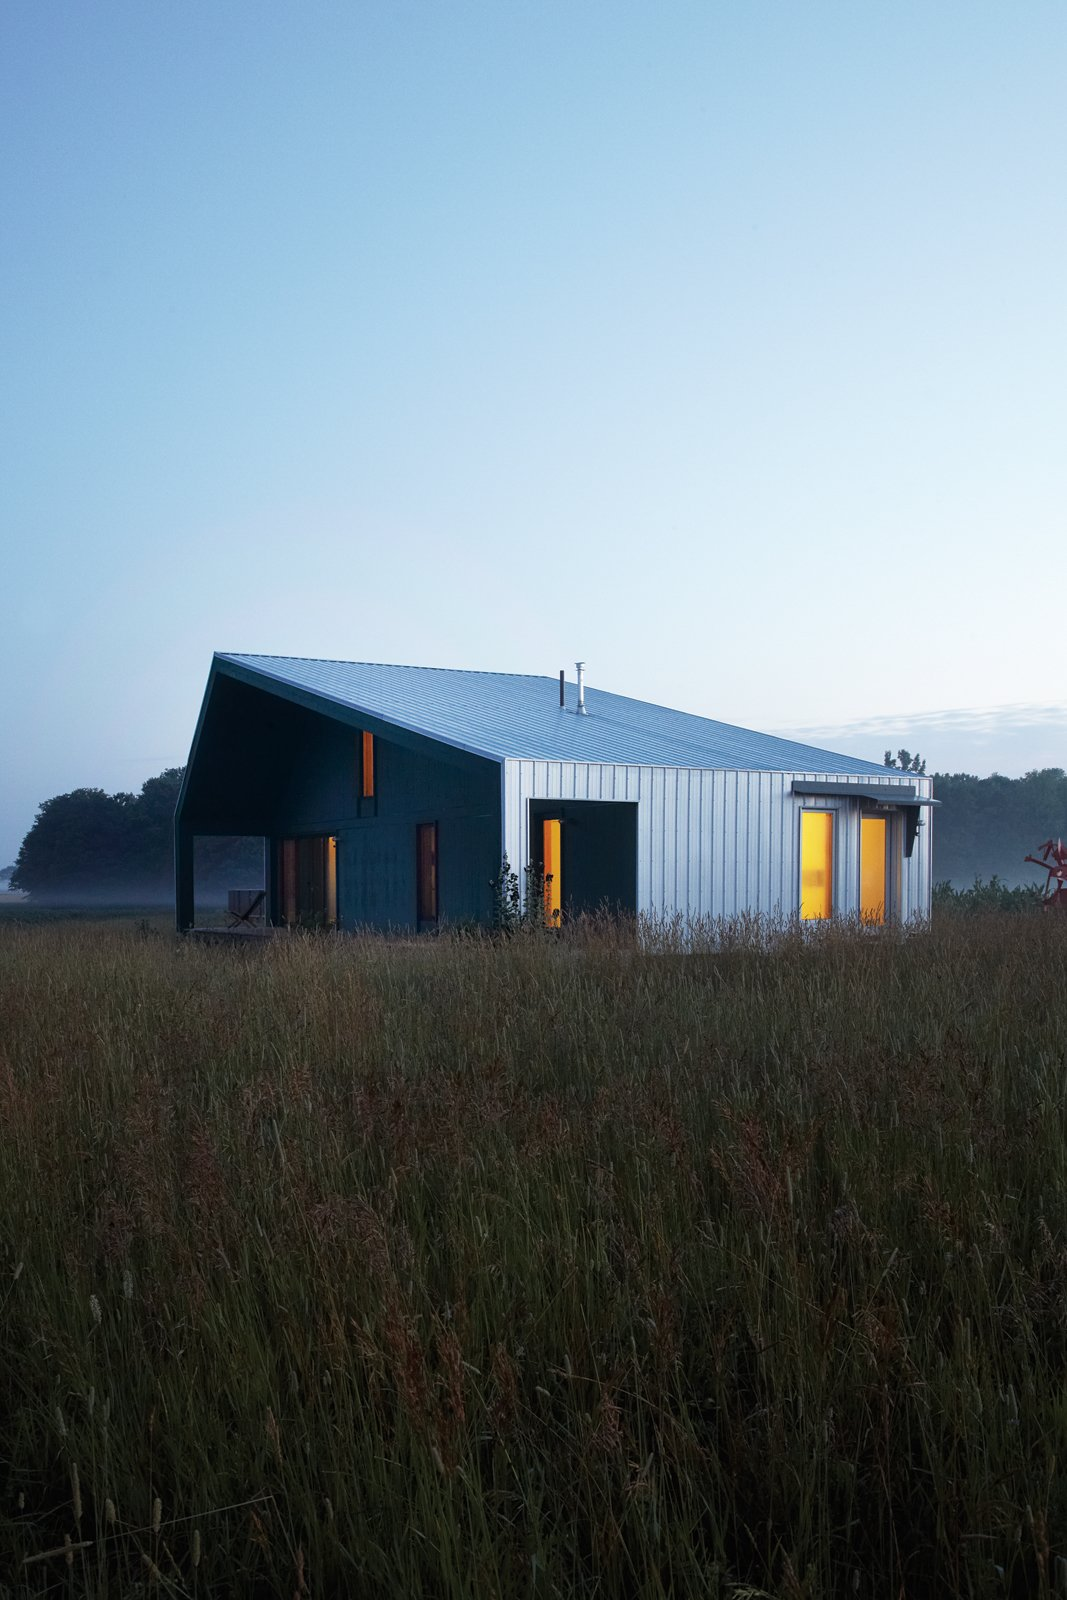 Articles about sustainably built home rural ontario on Dwell.com